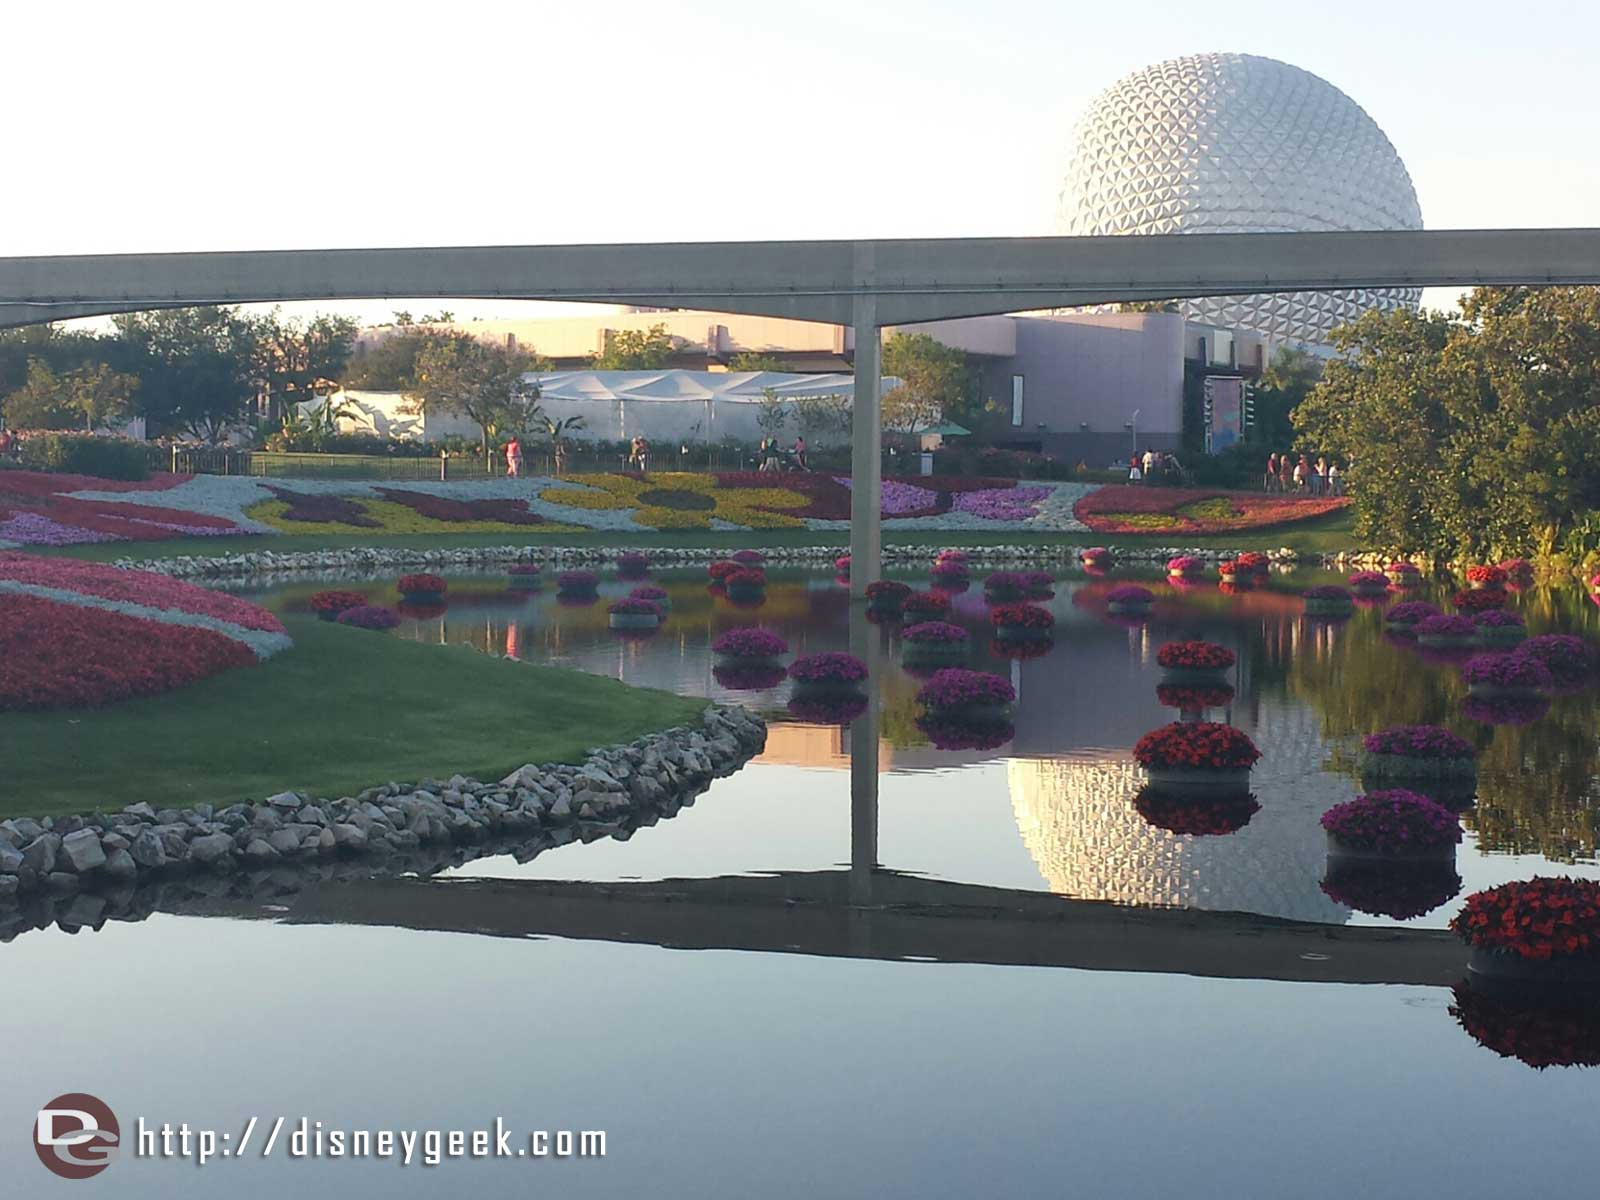 Had to pause for this picture along the way. But could not wait for a Monorail. Thought the reflection was great though.